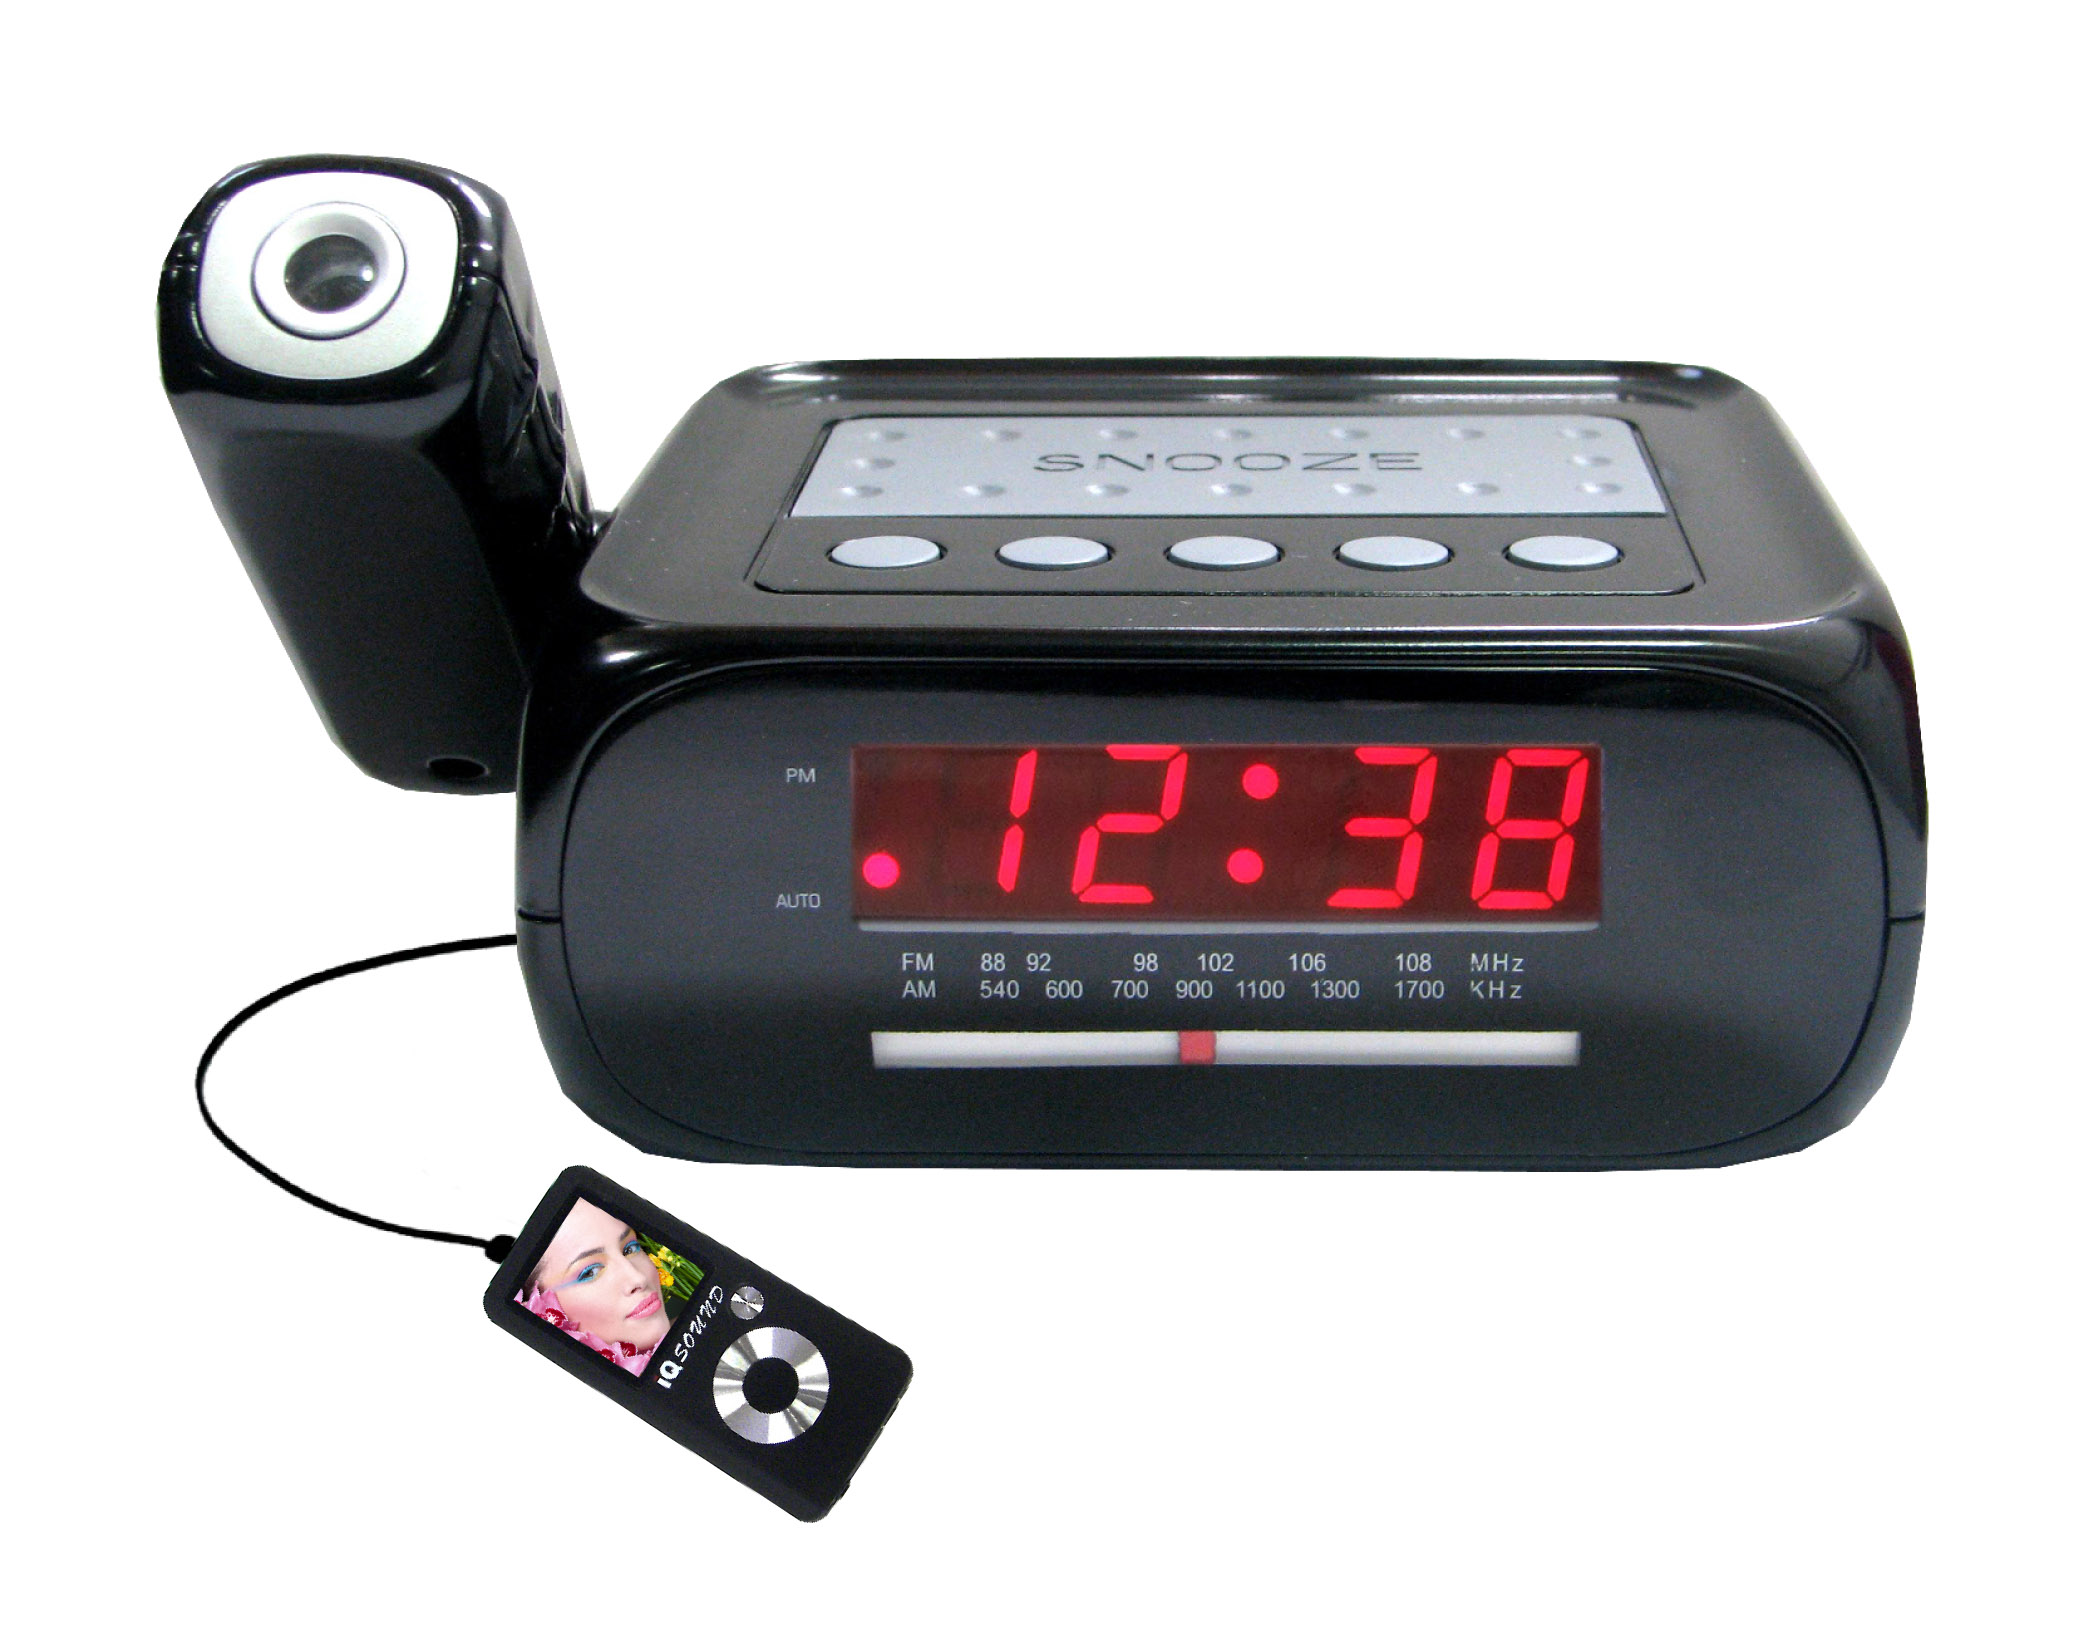 digital projection inc Buy supersonic sc371 digital projection alarm clock with radio: alarm clocks -  amazoncom ✓ free delivery possible on eligible purchases.